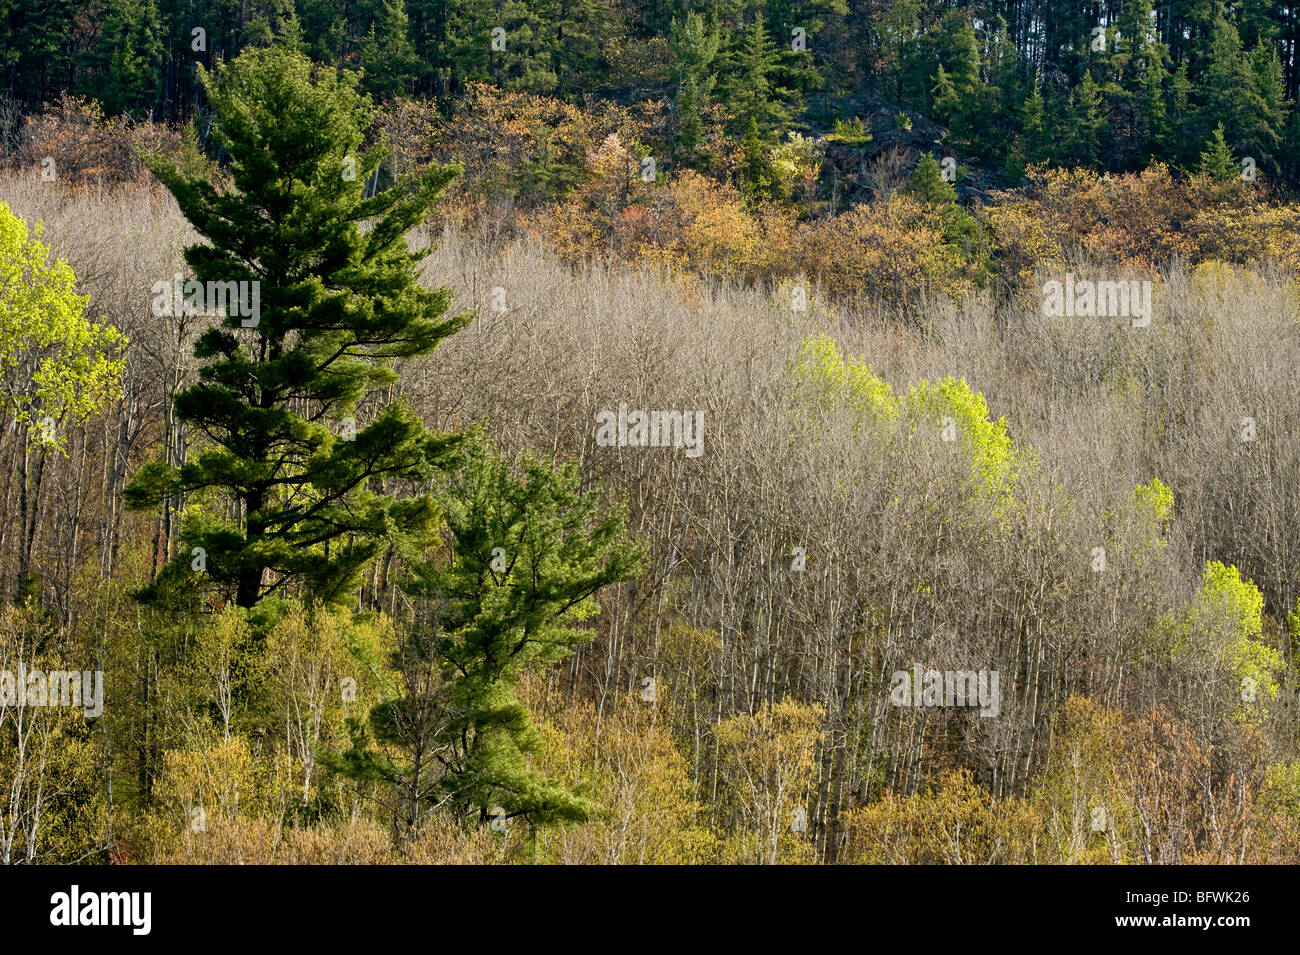 Aspens with emerging foliage and white pine on slopes overlooking Onaping River, Greater Sudbury, Ontario, Canada - Stock Image